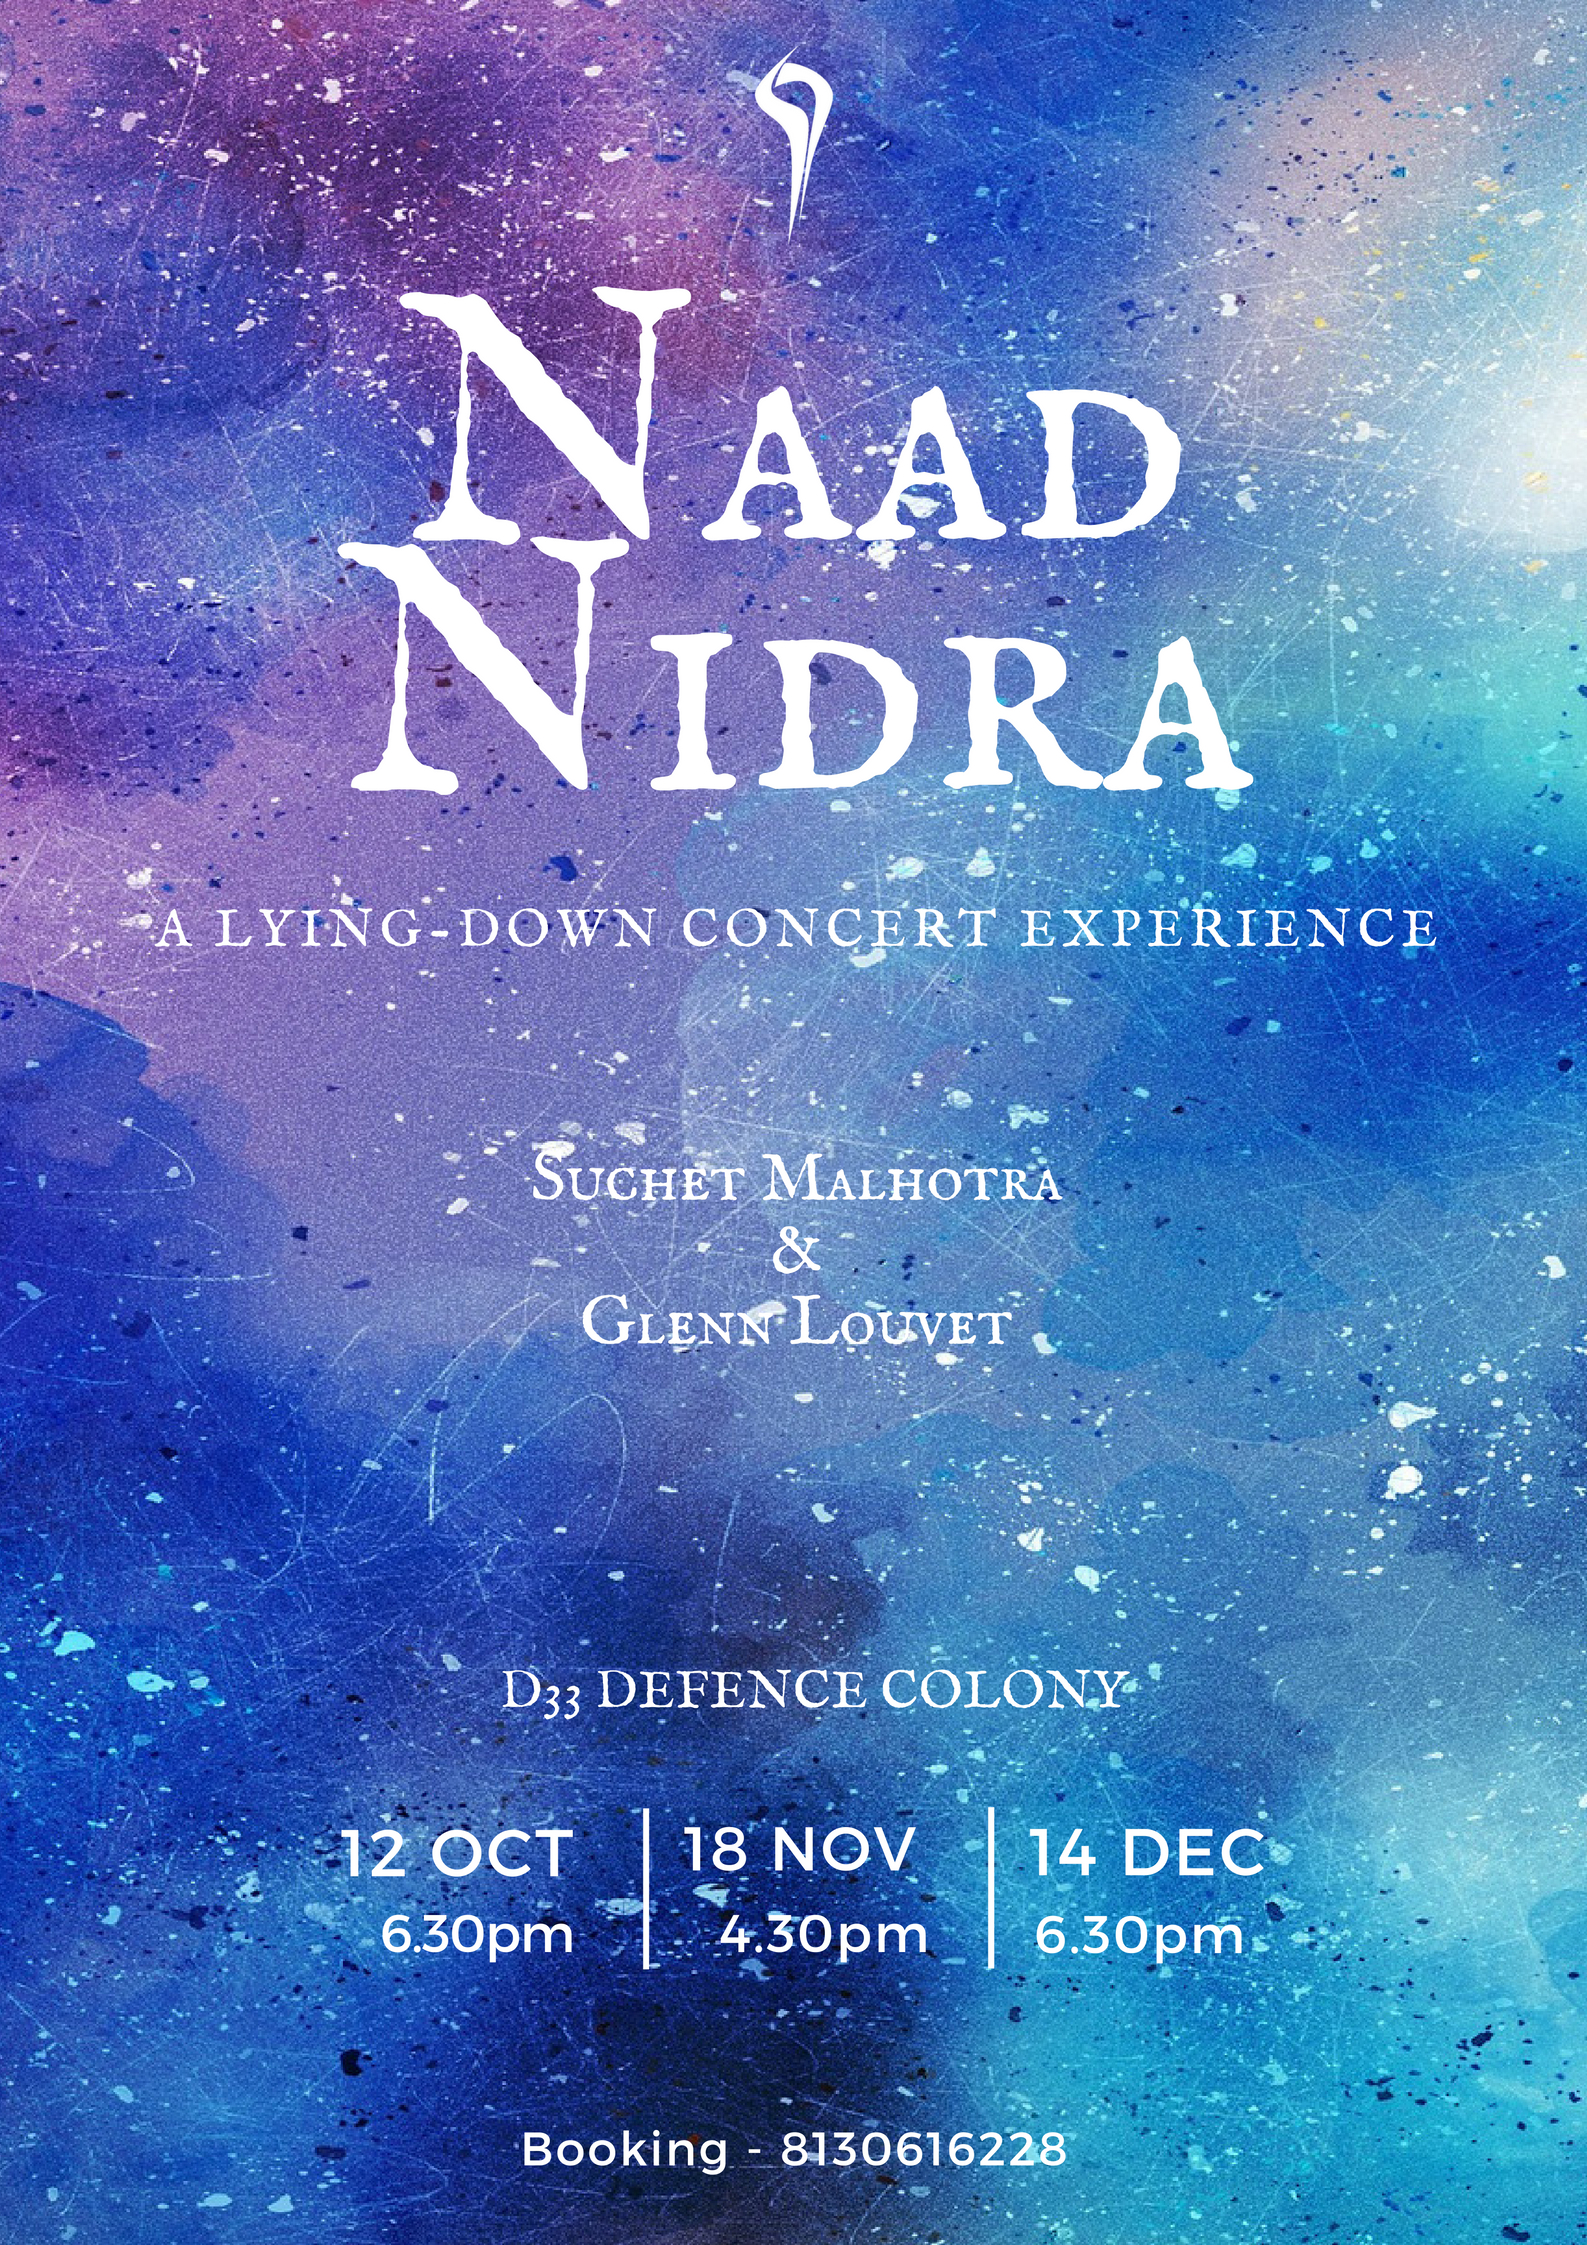 Naad Nidra: a new season!